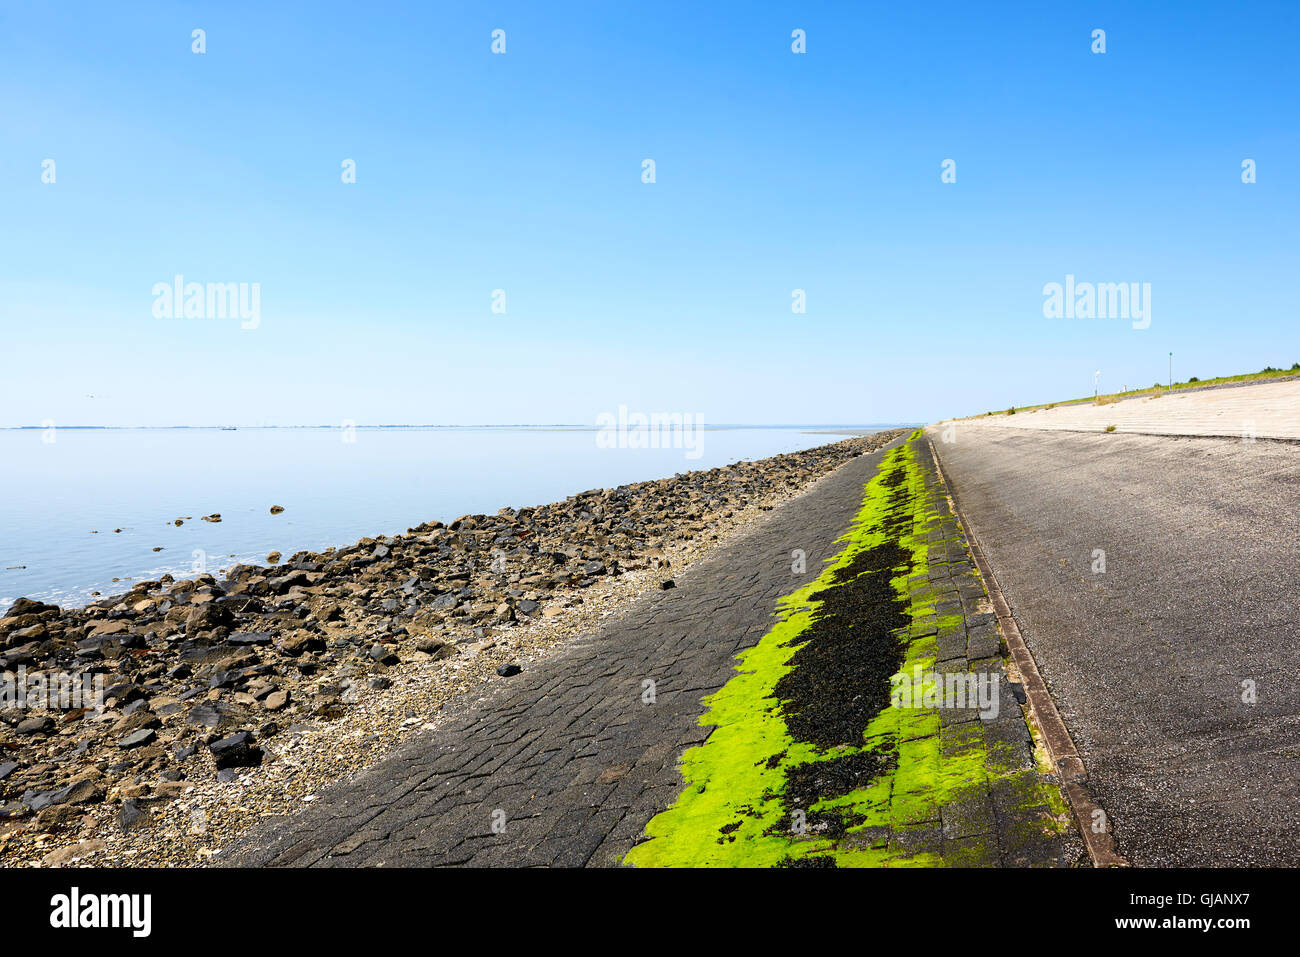 Oesterdam (Oysterdam), the longest dam of the Delta Works in the Netherlands - Stock Image